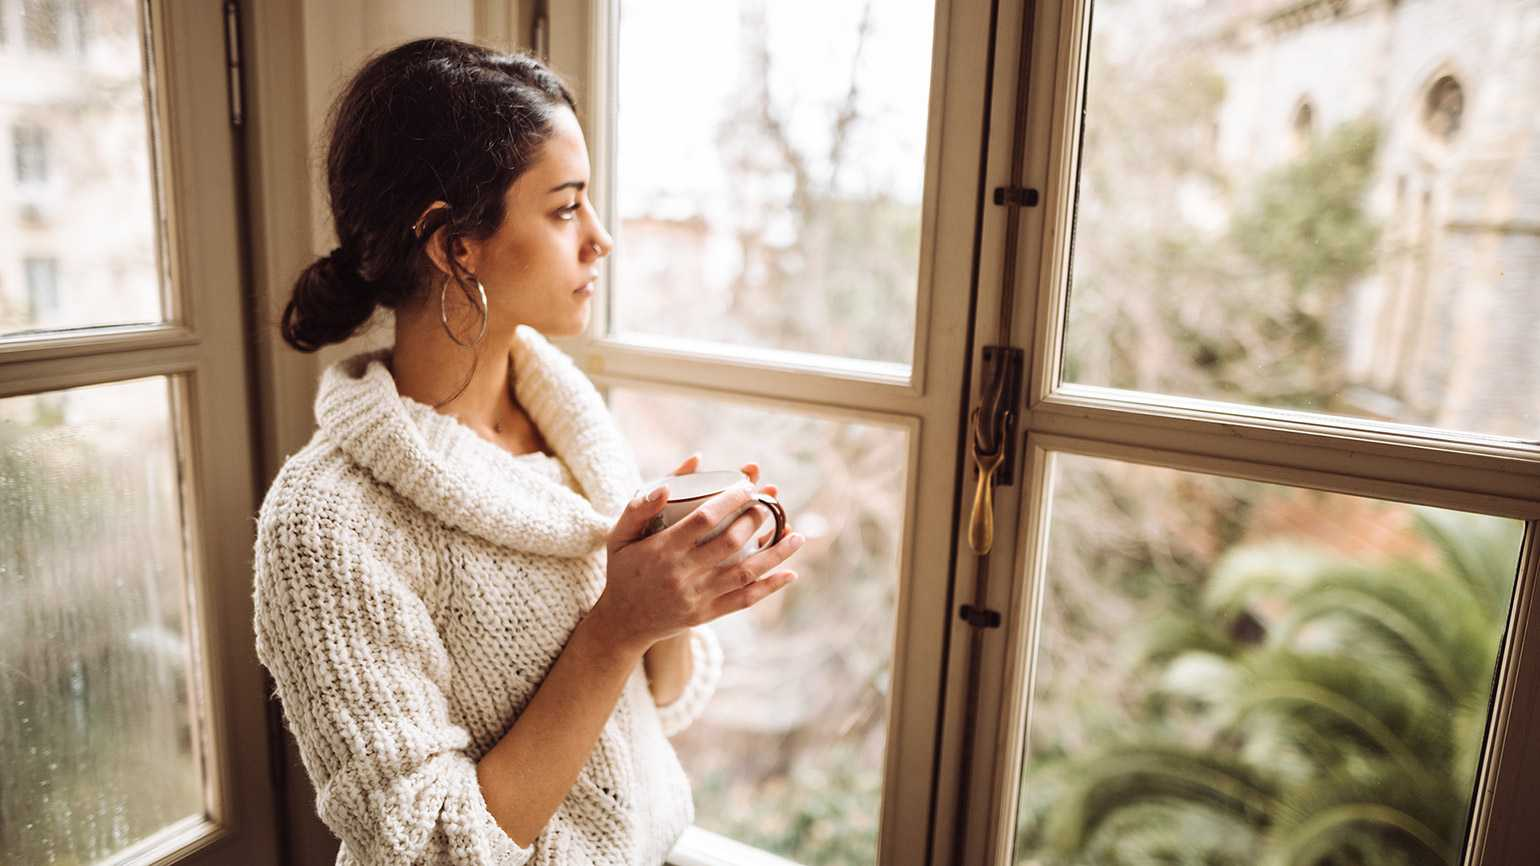 A thoughtful woman gazes out a window